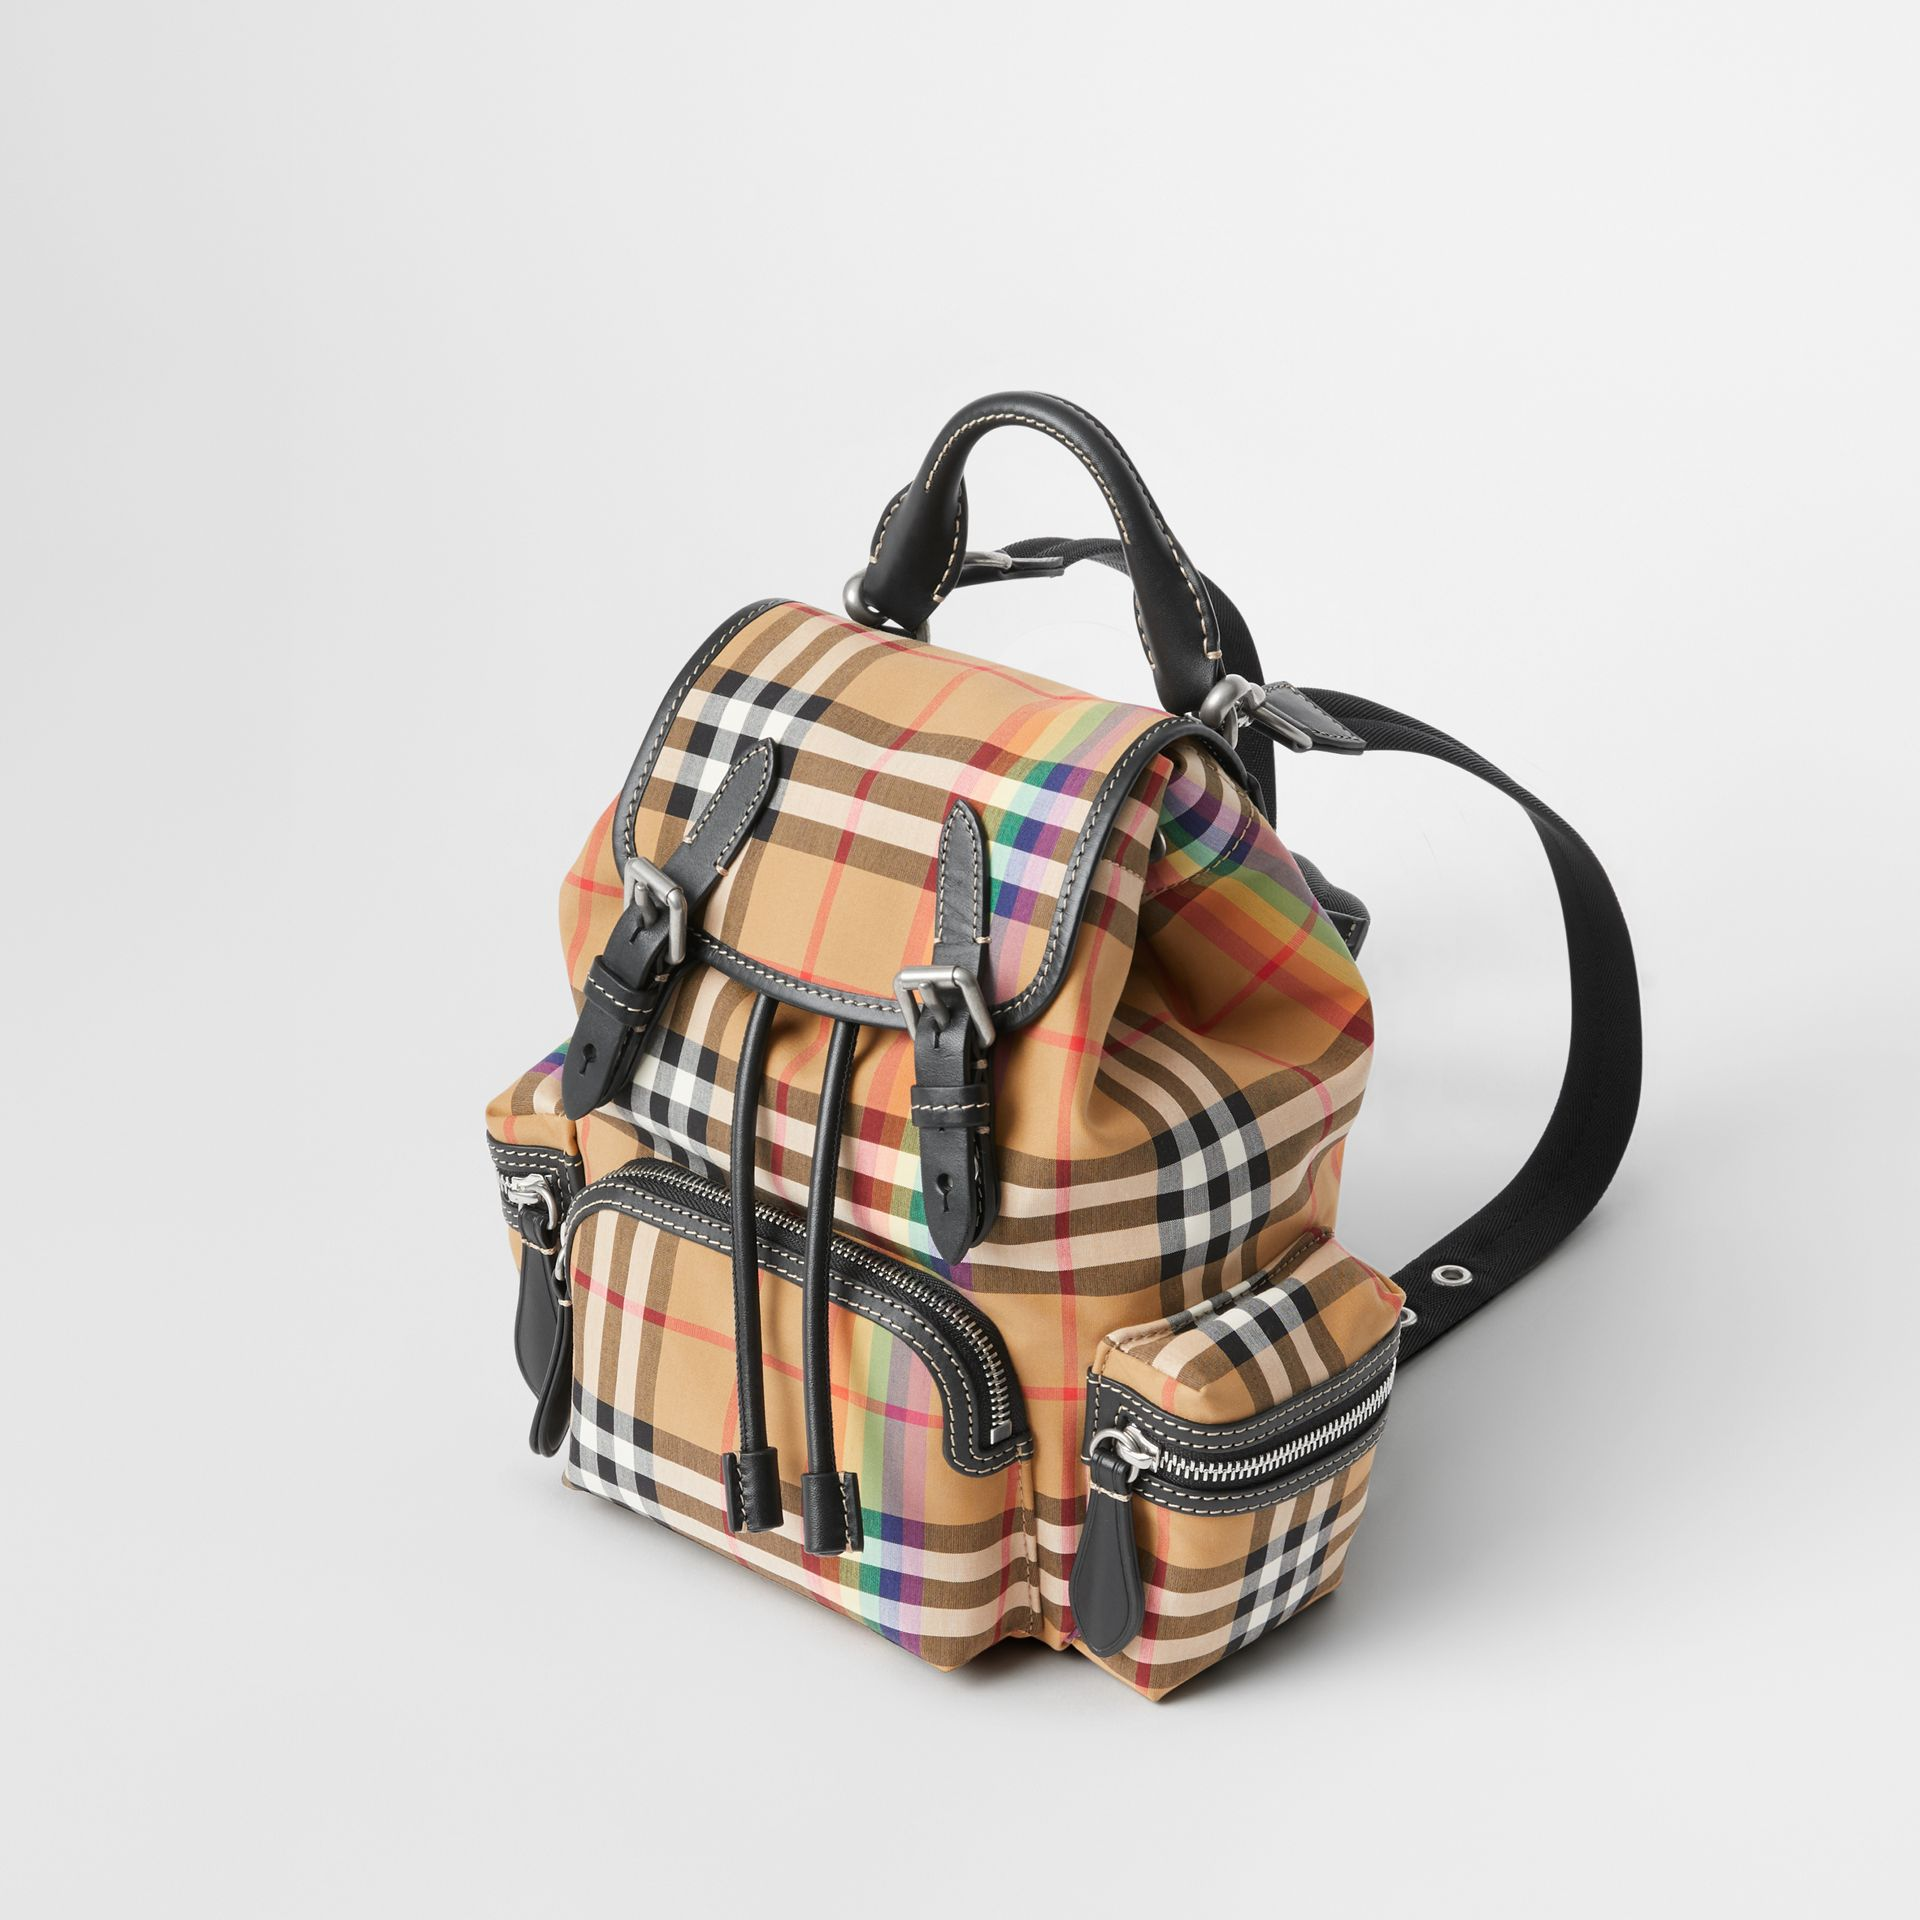 Petit sac The Rucksack à bandoulière avec motif Rainbow Vintage check (Jaune Antique) - Femme | Burberry Canada - photo de la galerie 2